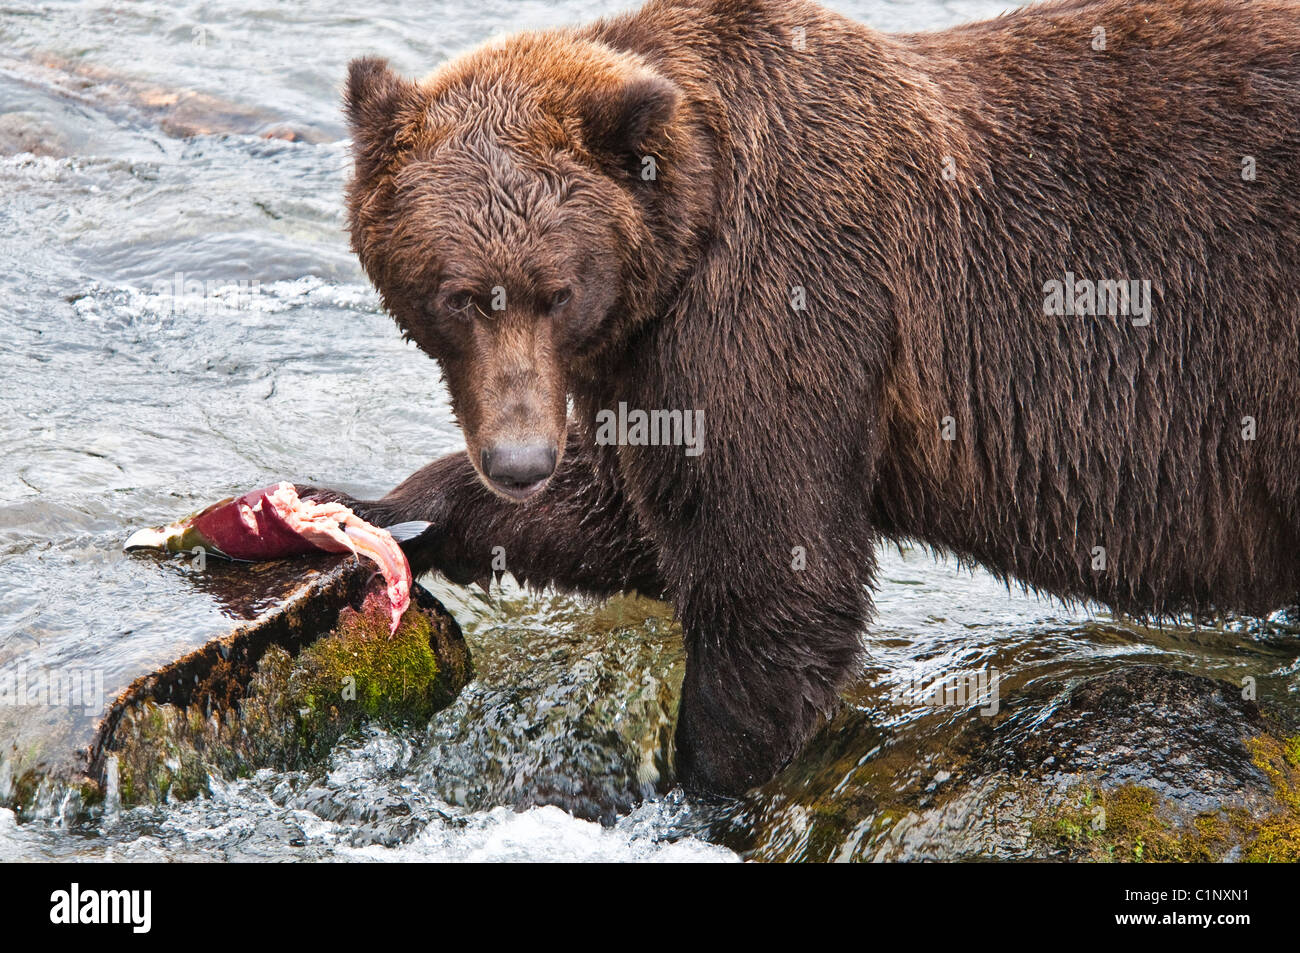 Grizzly Bear, Ursus arctos horriblis, eating salmon, Brooks River, Katmai National Park, Alaska, USA - Stock Image